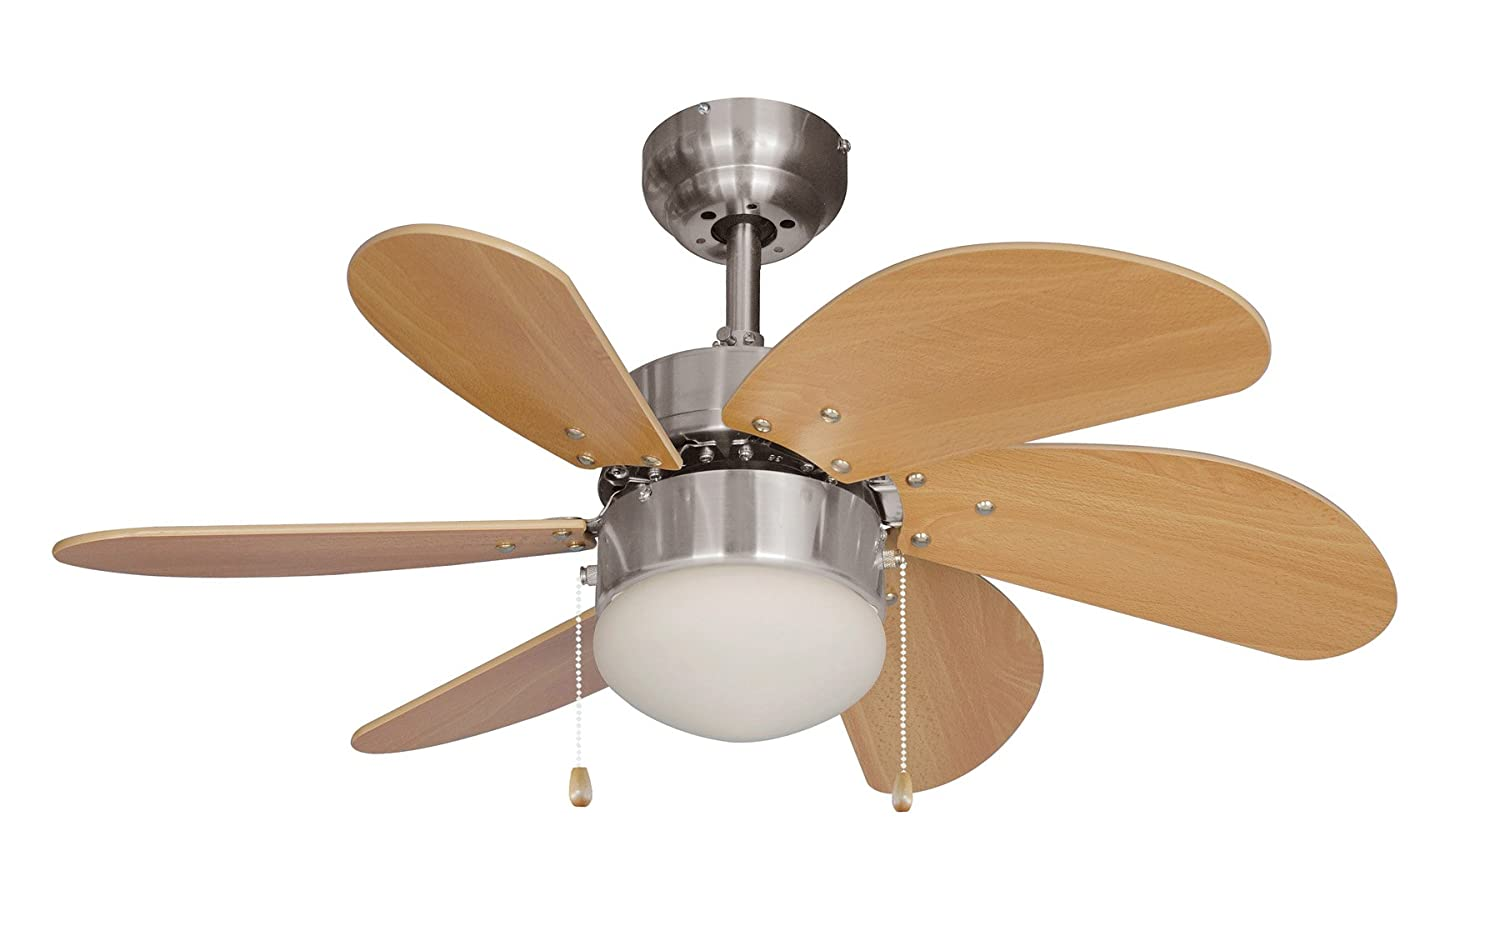 Hardware house h10 4852 monterey 30 inch dual mount ceiling fan hardware house h10 4852 monterey 30 inch dual mount ceiling fan beach wood and satin nickel amazon aloadofball Images